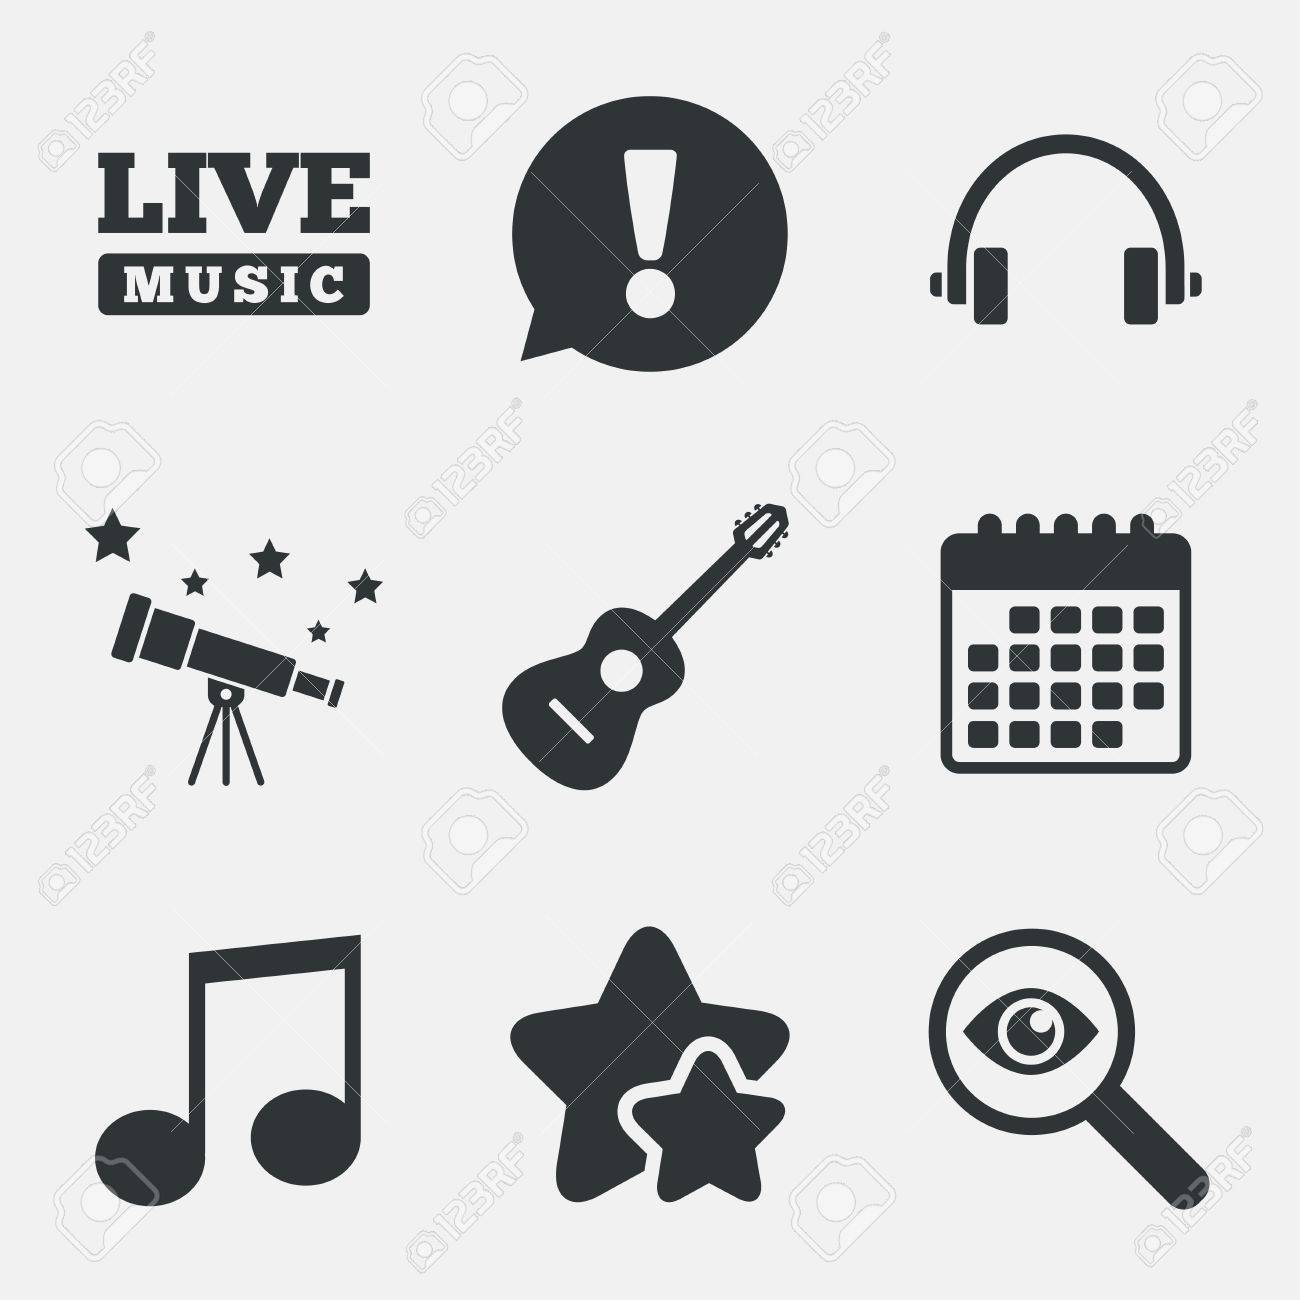 Musical elements icons musical note key and live music symbols musical elements icons musical note key and live music symbols headphones and acoustic guitar biocorpaavc